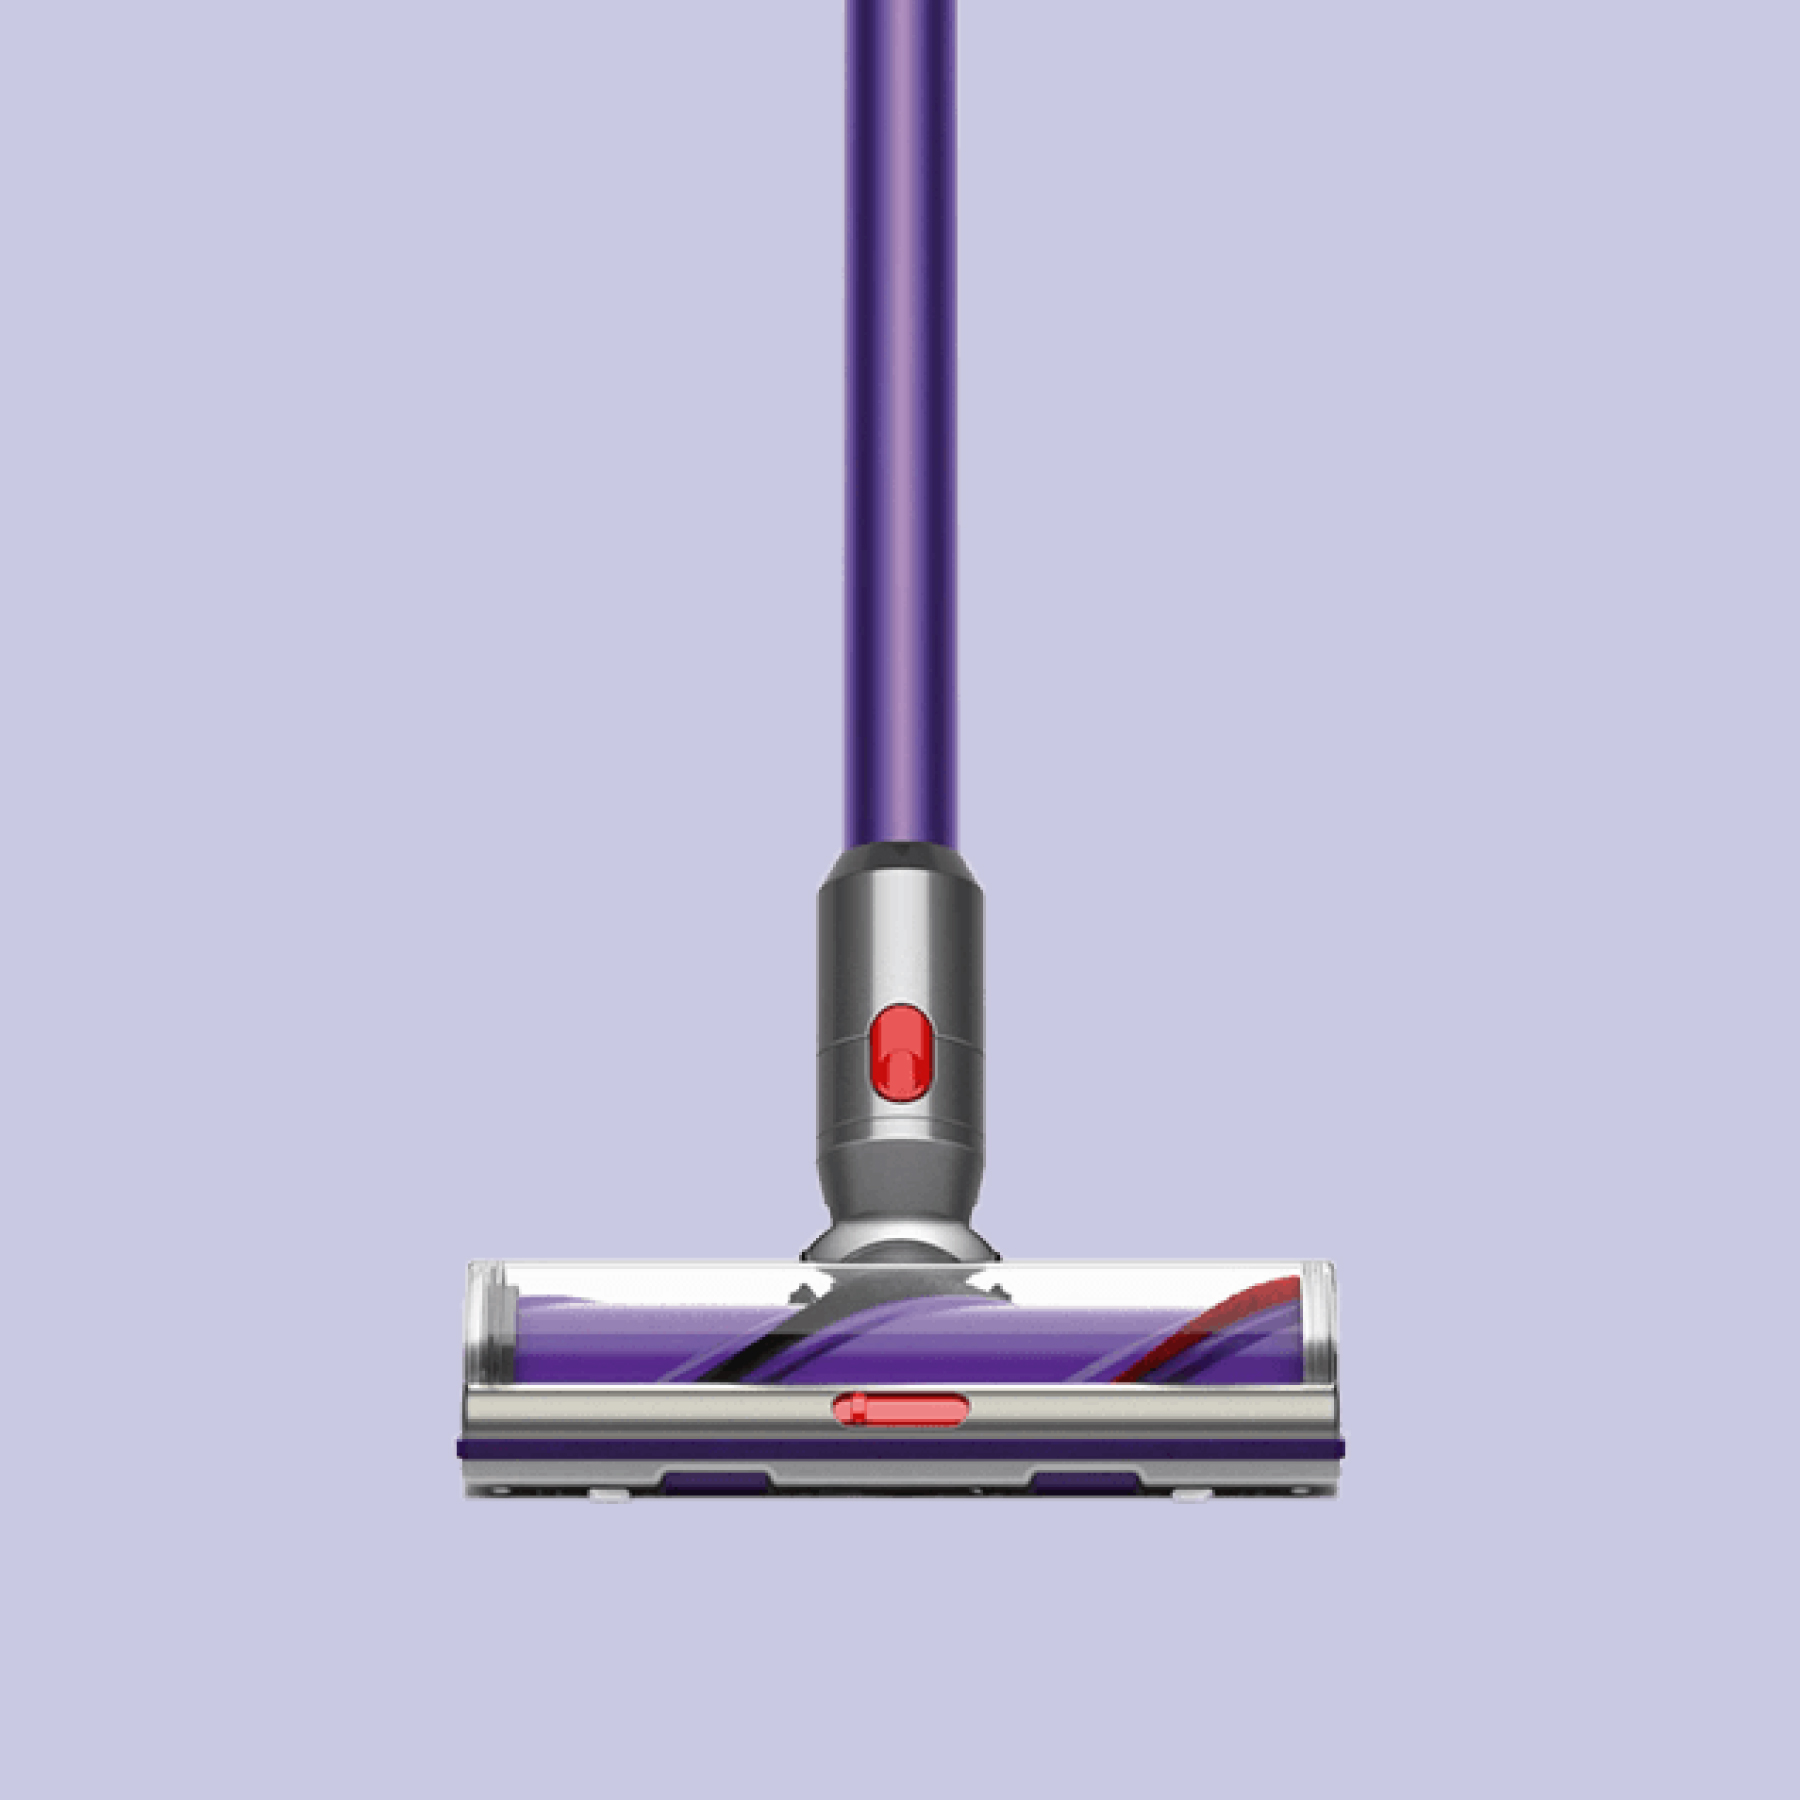 Best stick vacuums